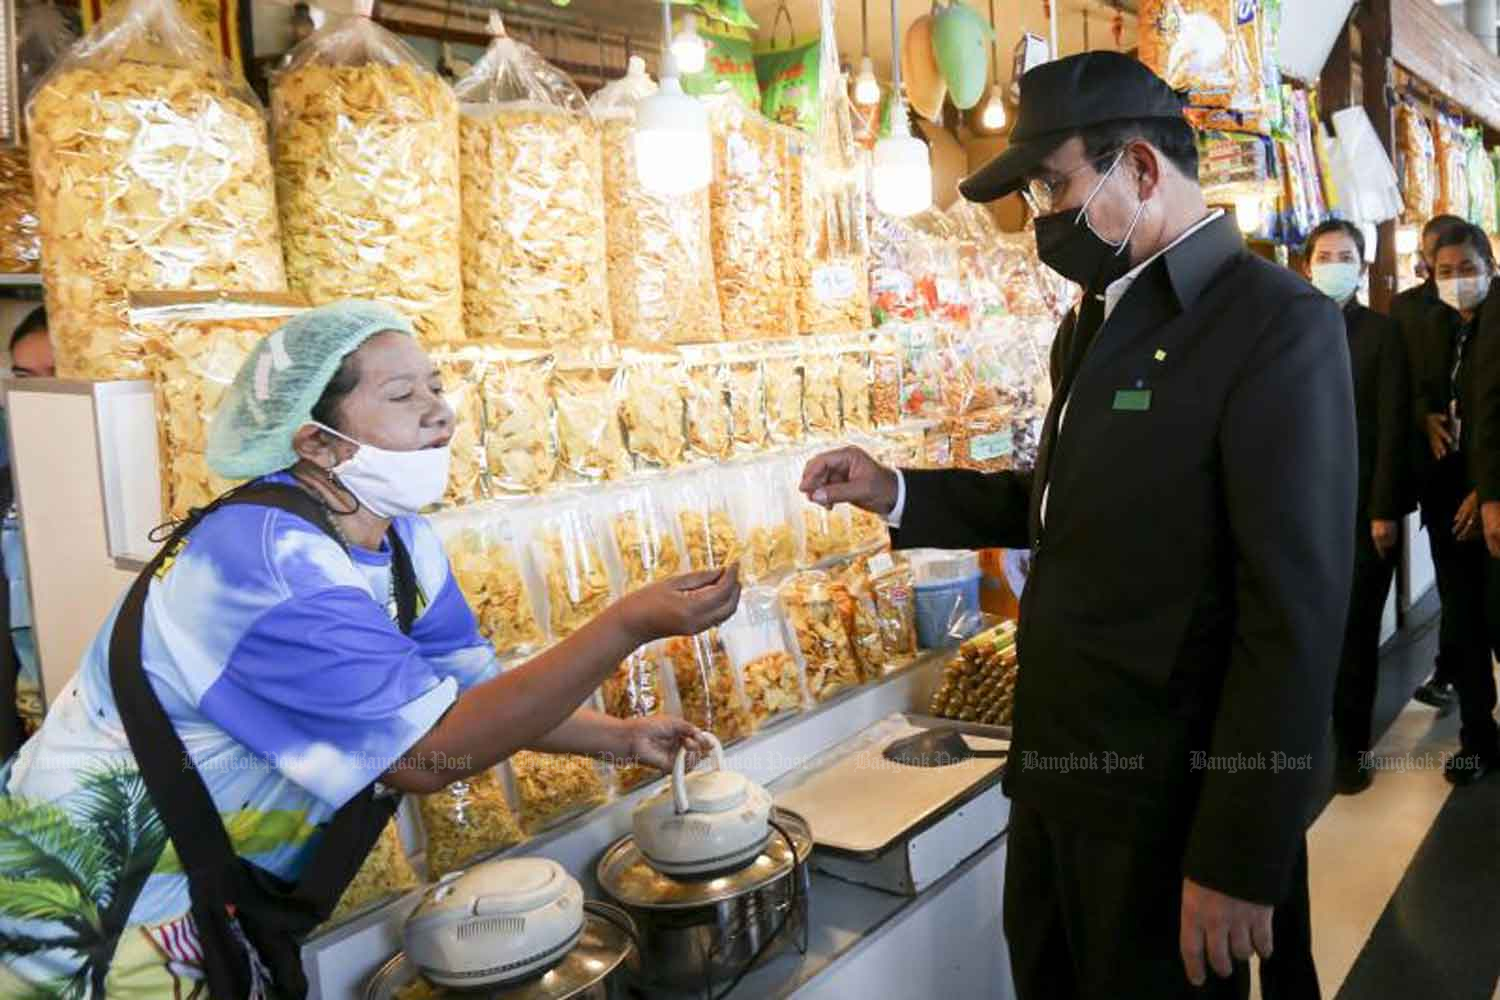 Prime Minister Prayut Chan-o-cha tries durian chips during his visit to Rayong province on Tuesday. He said the country needed to welcome back foreign tourists, for the survival of its economy. (Photo: Pattarapong Chatpattarasill)